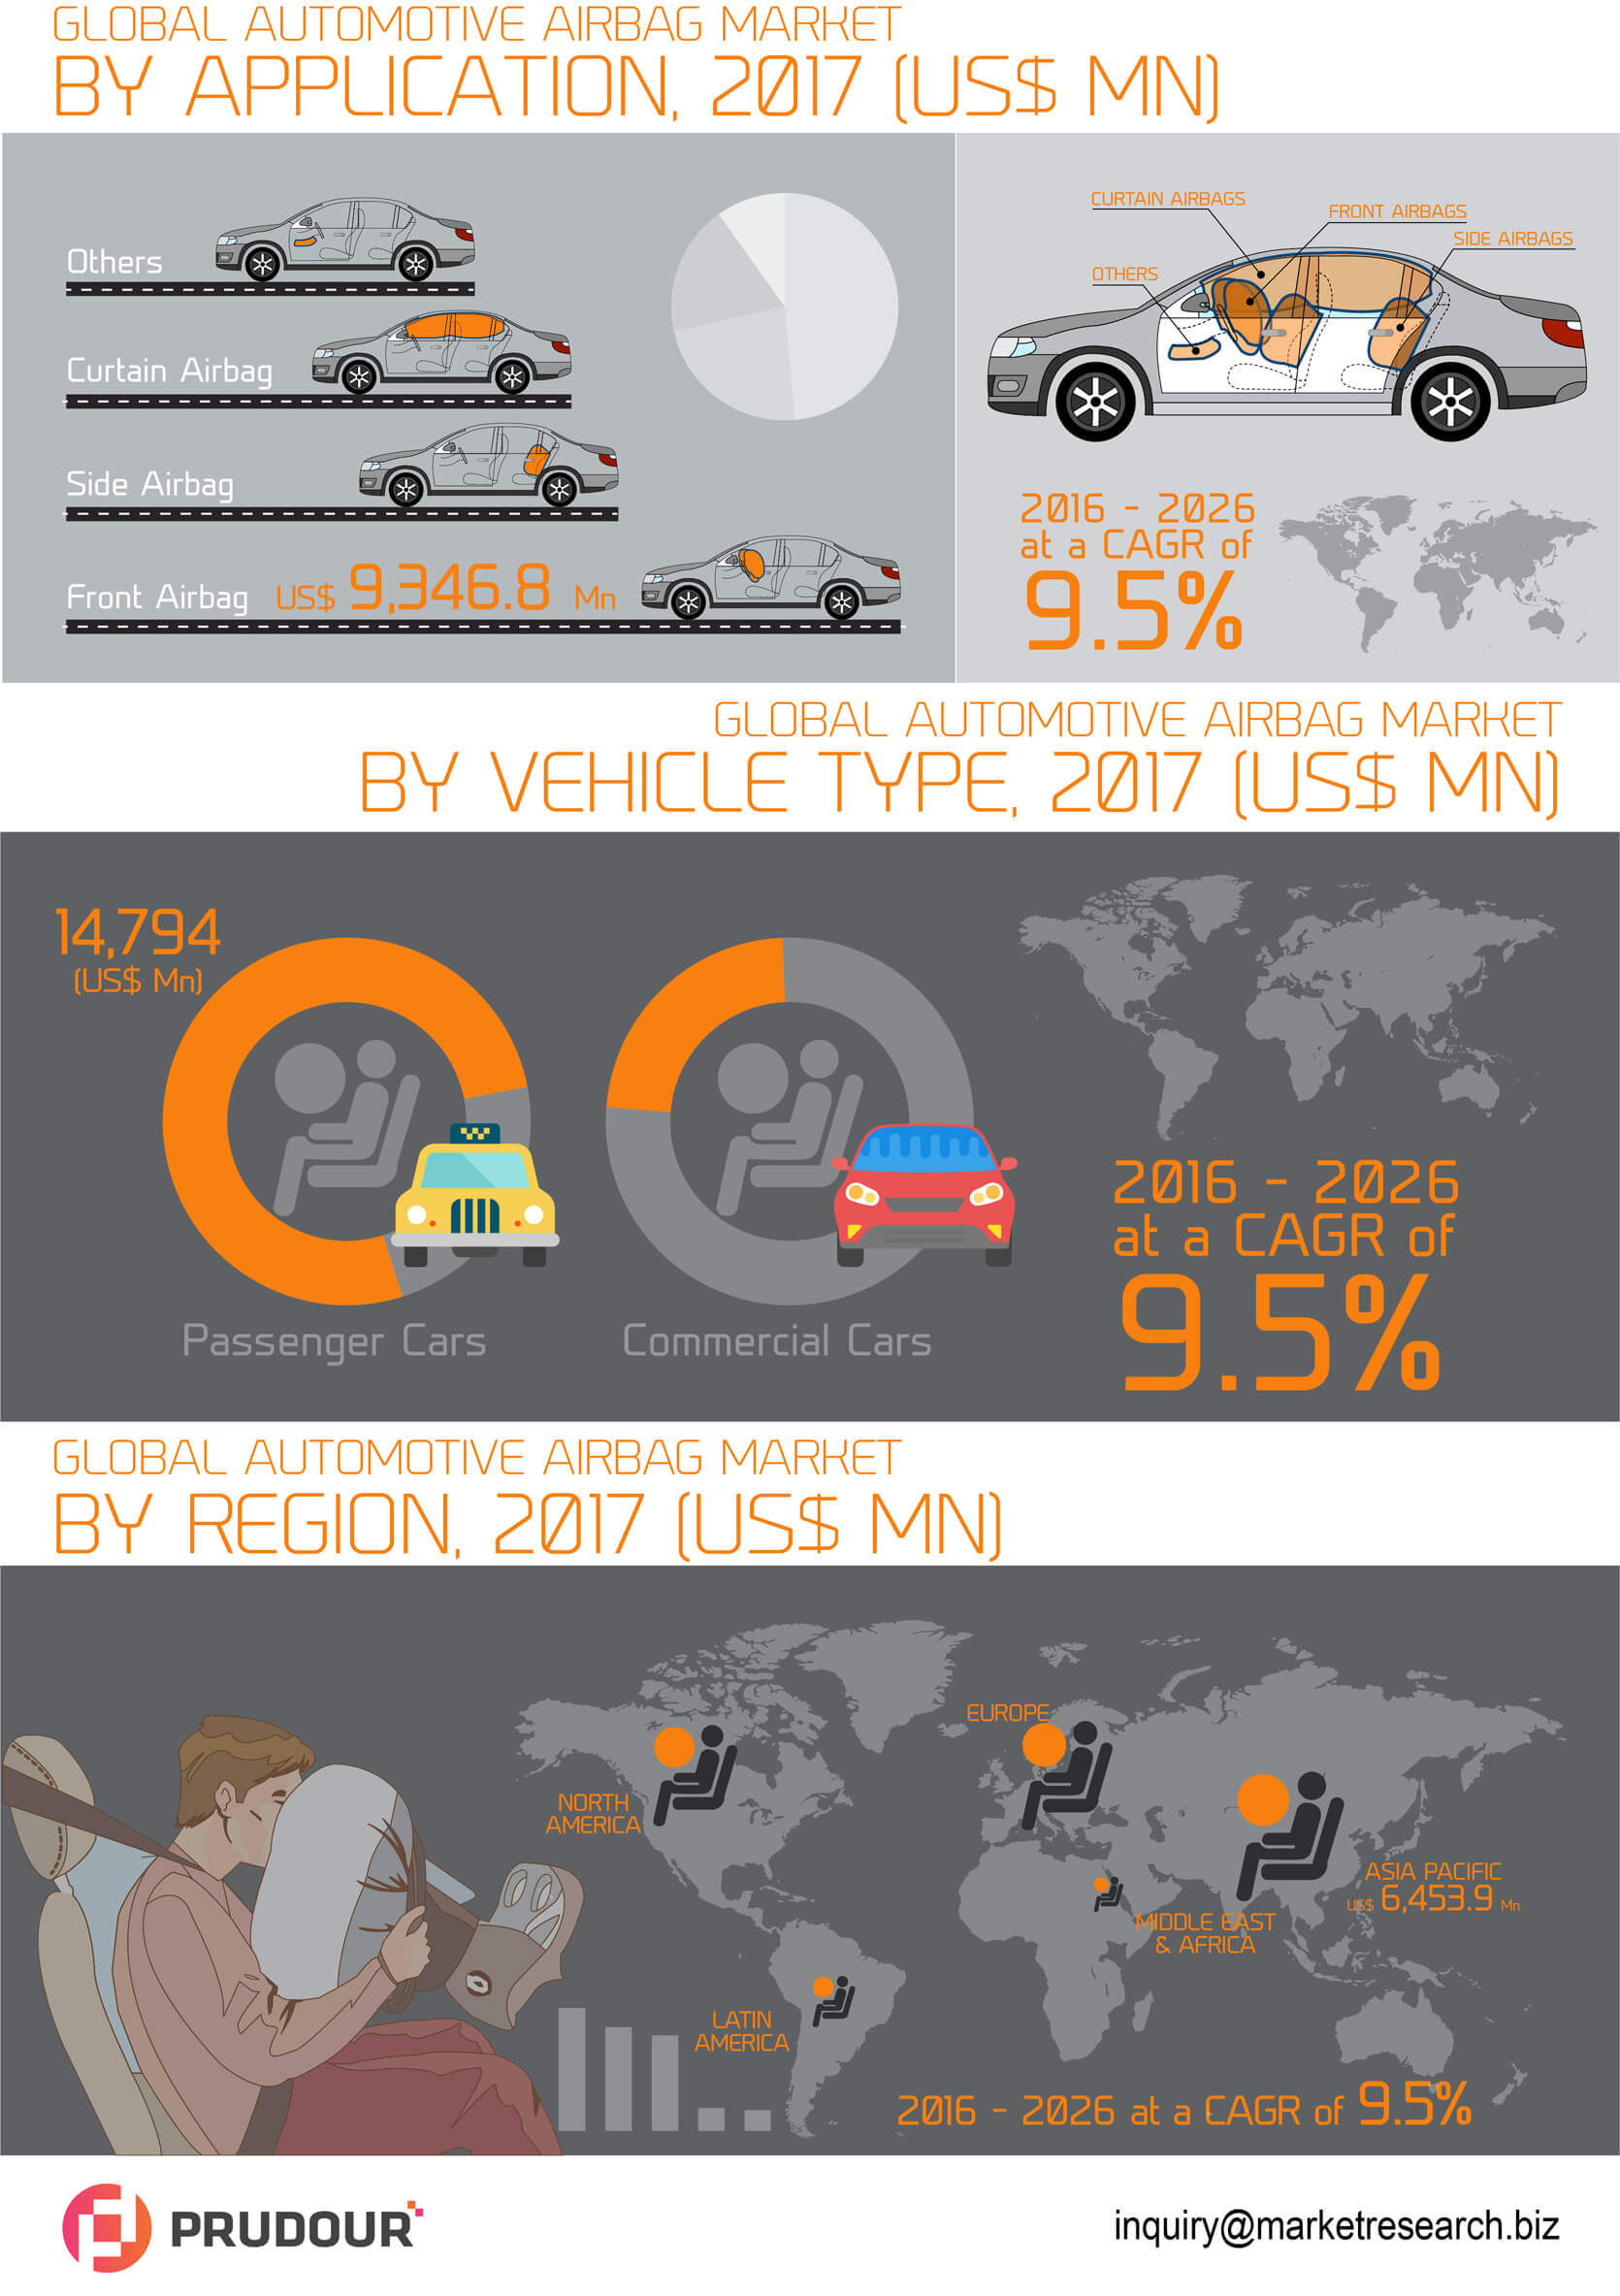 global-automotive-airbag-market-infographic-plaza